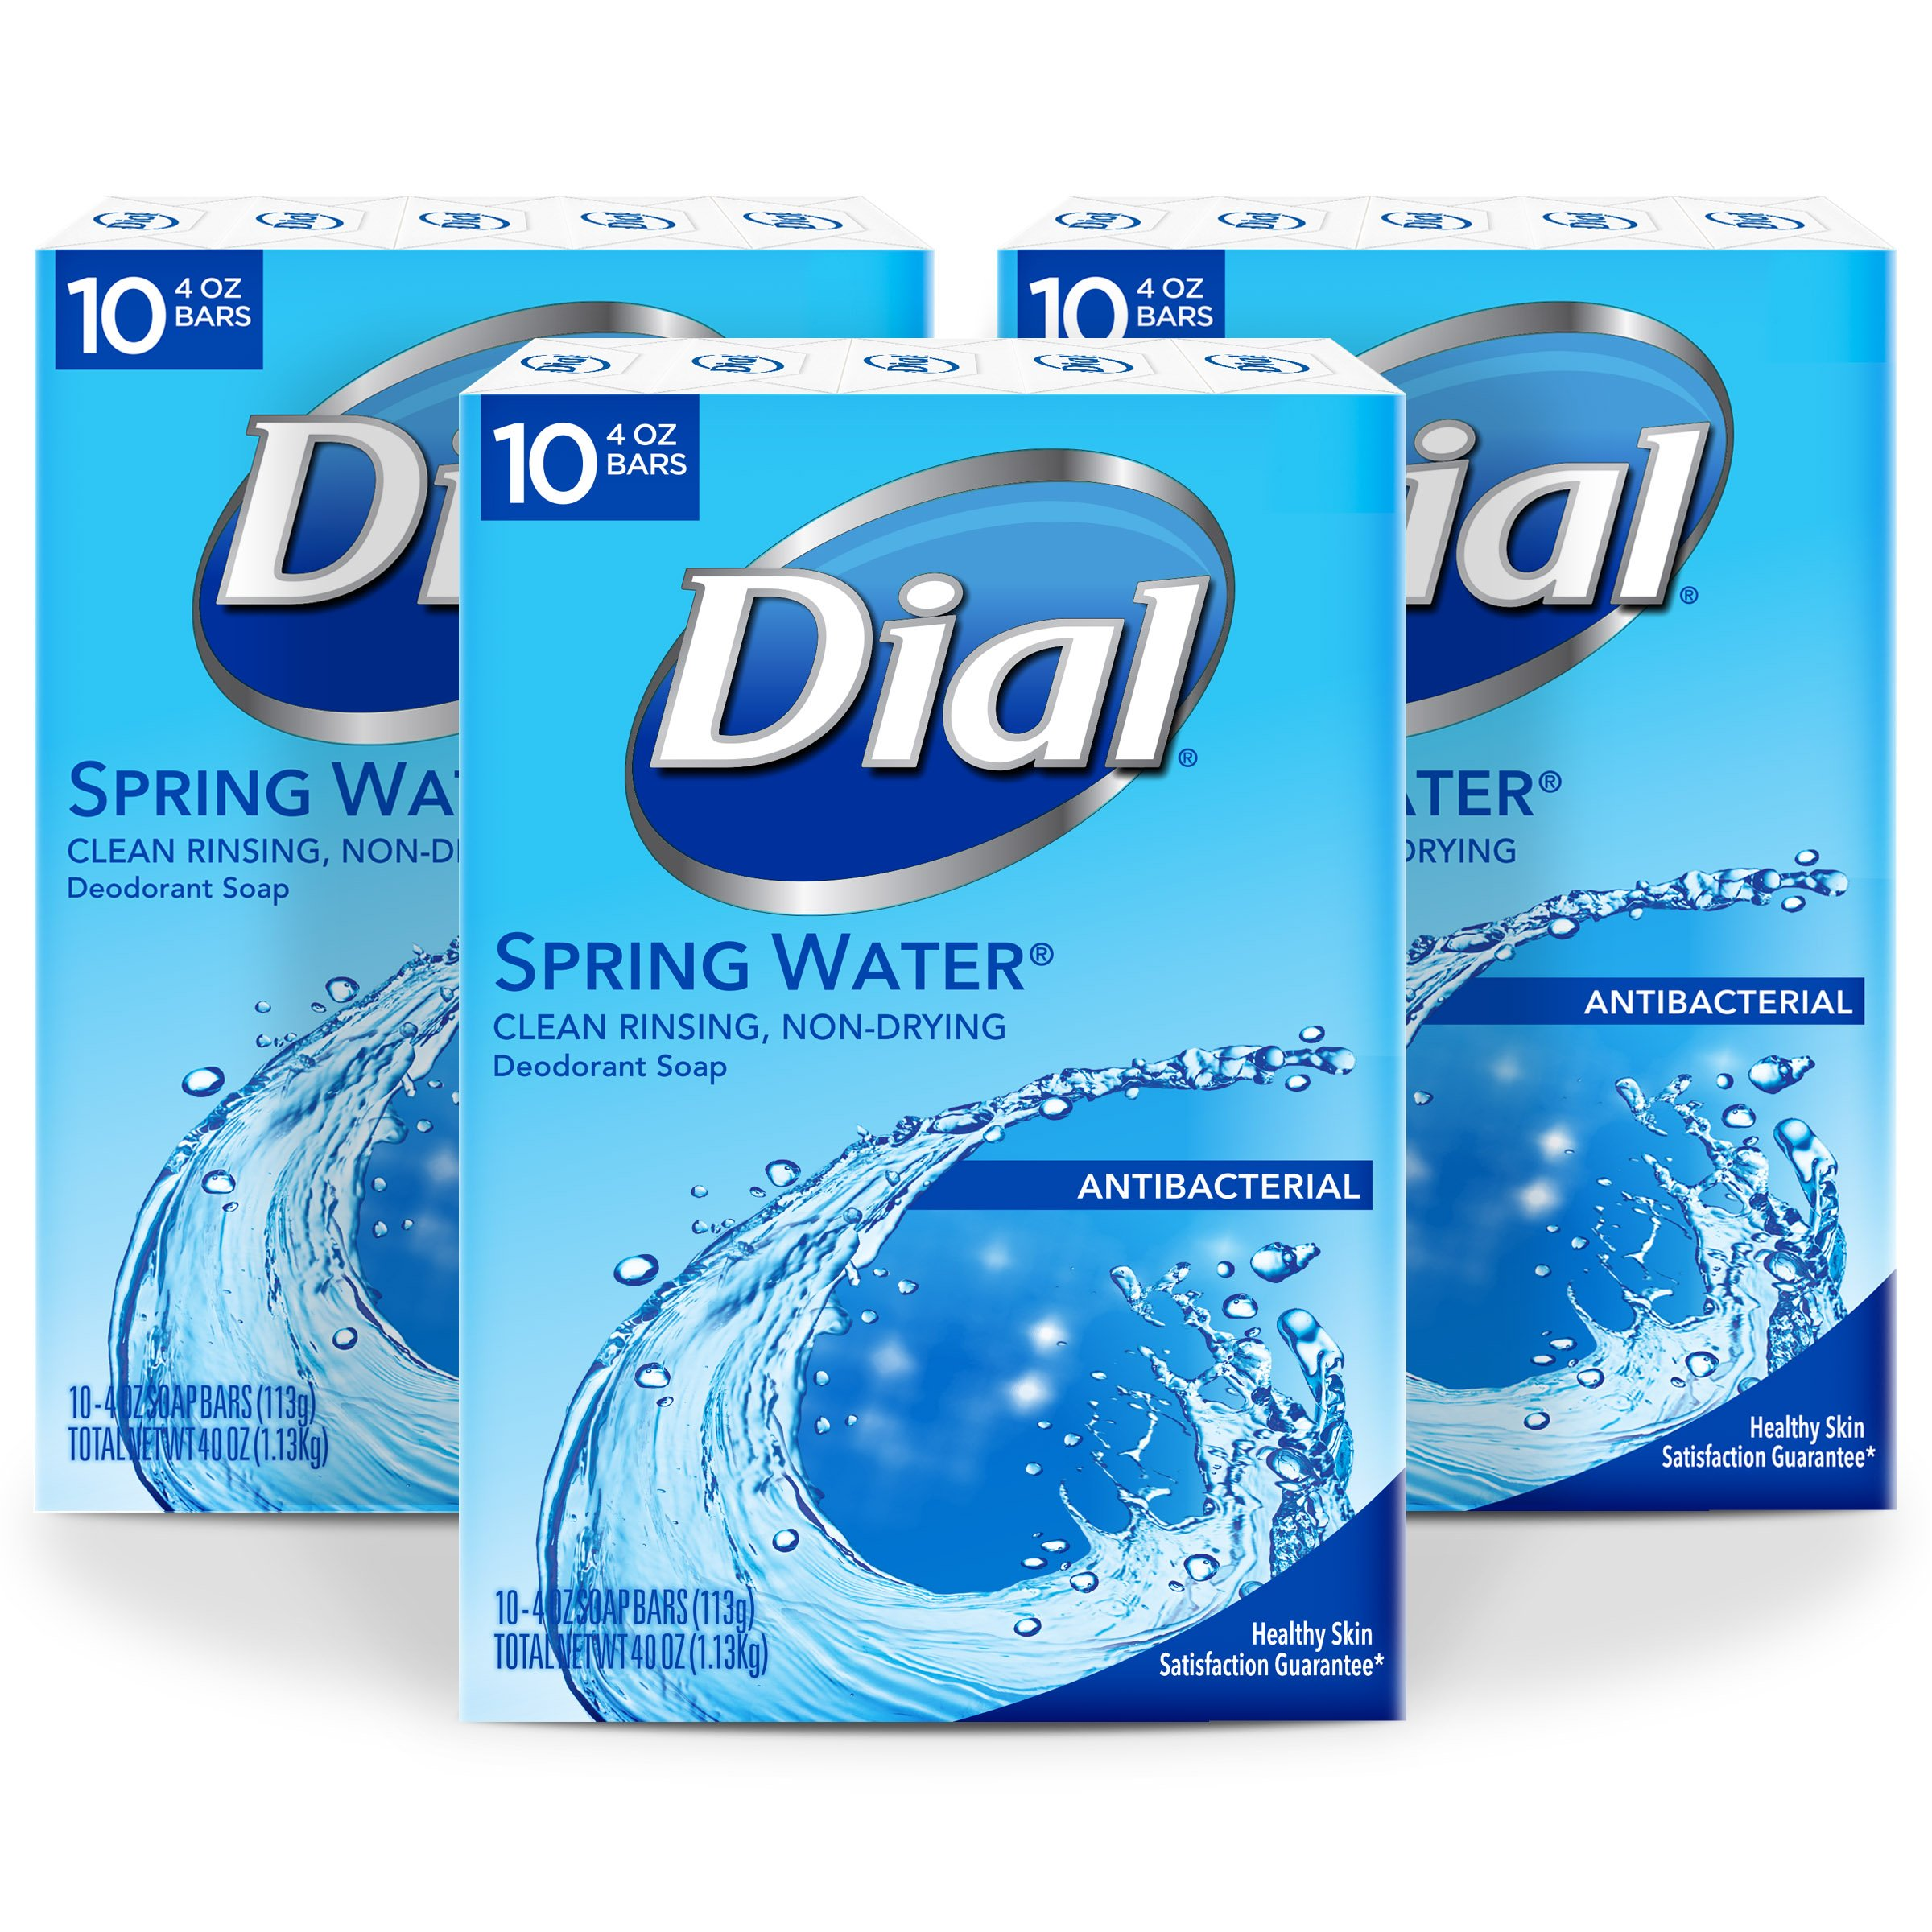 Dial Antibacterial Deodorant Bar Soap, Spring Water, 4-Ounce Bars, 10 Count (Pack of 3) by Dial (Image #1)